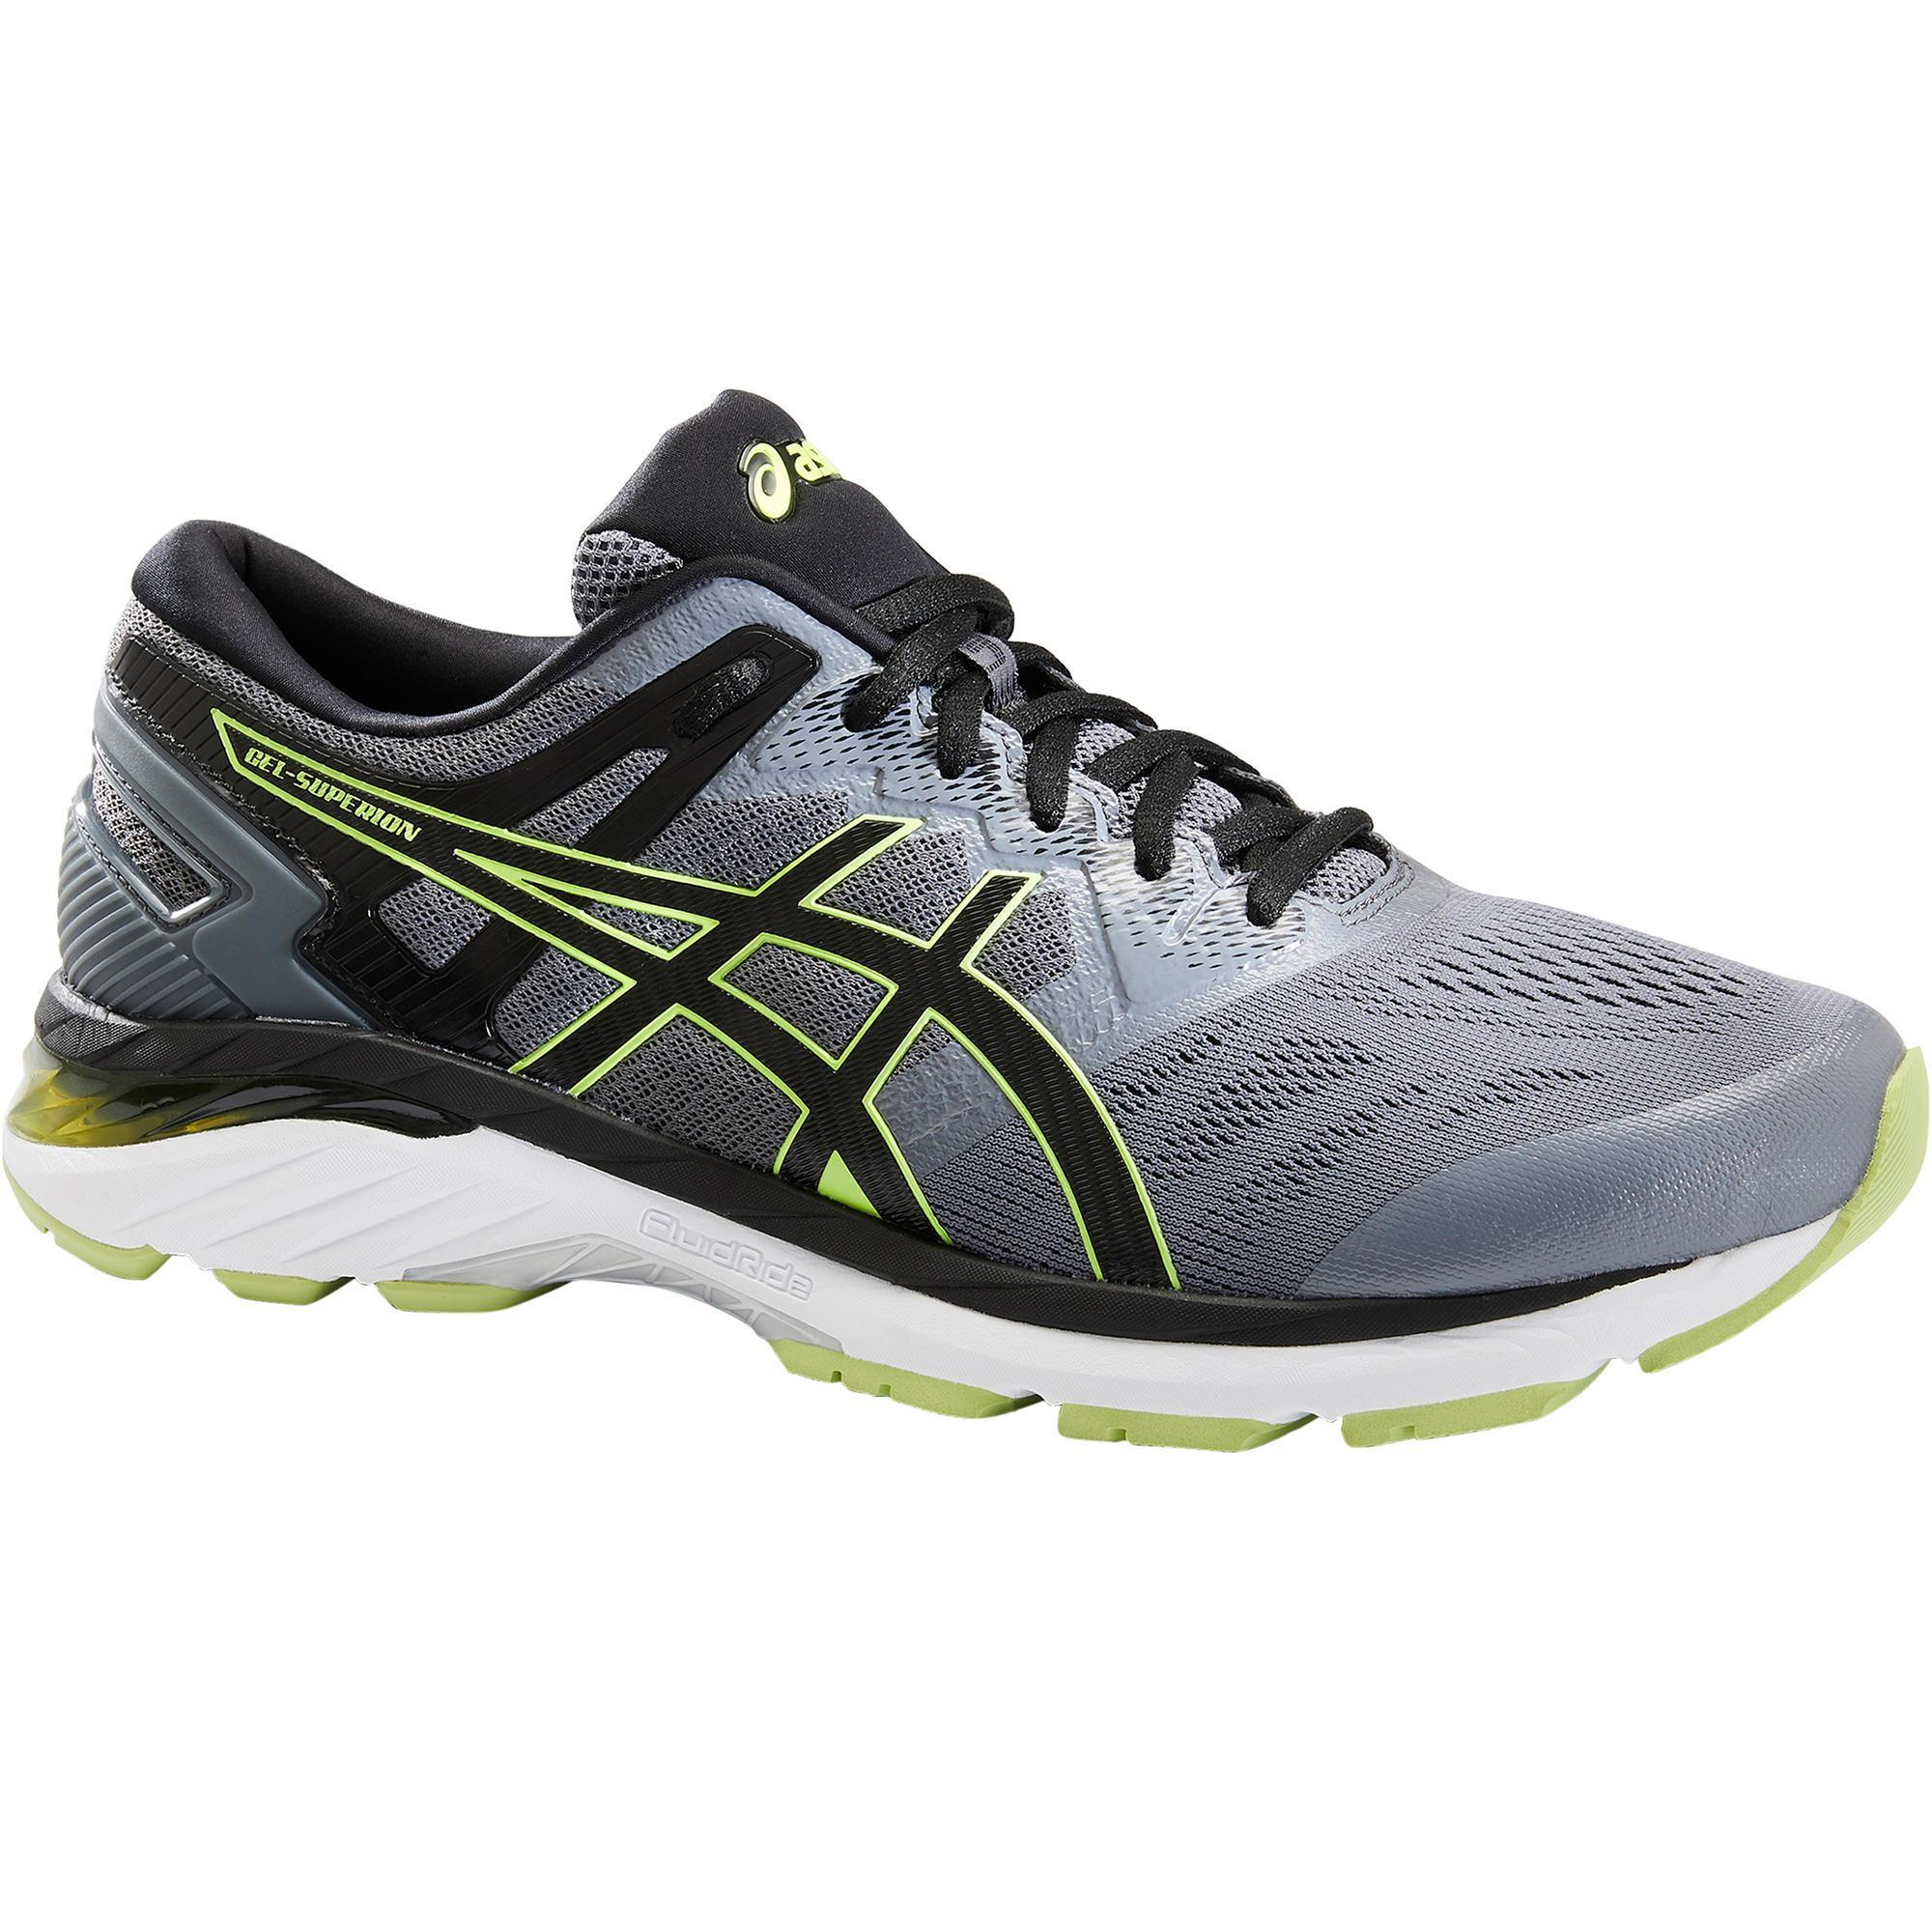 new arrivals cheap prices where can i buy Chaussures homme - Jogging, Running, Trail | Decathlon